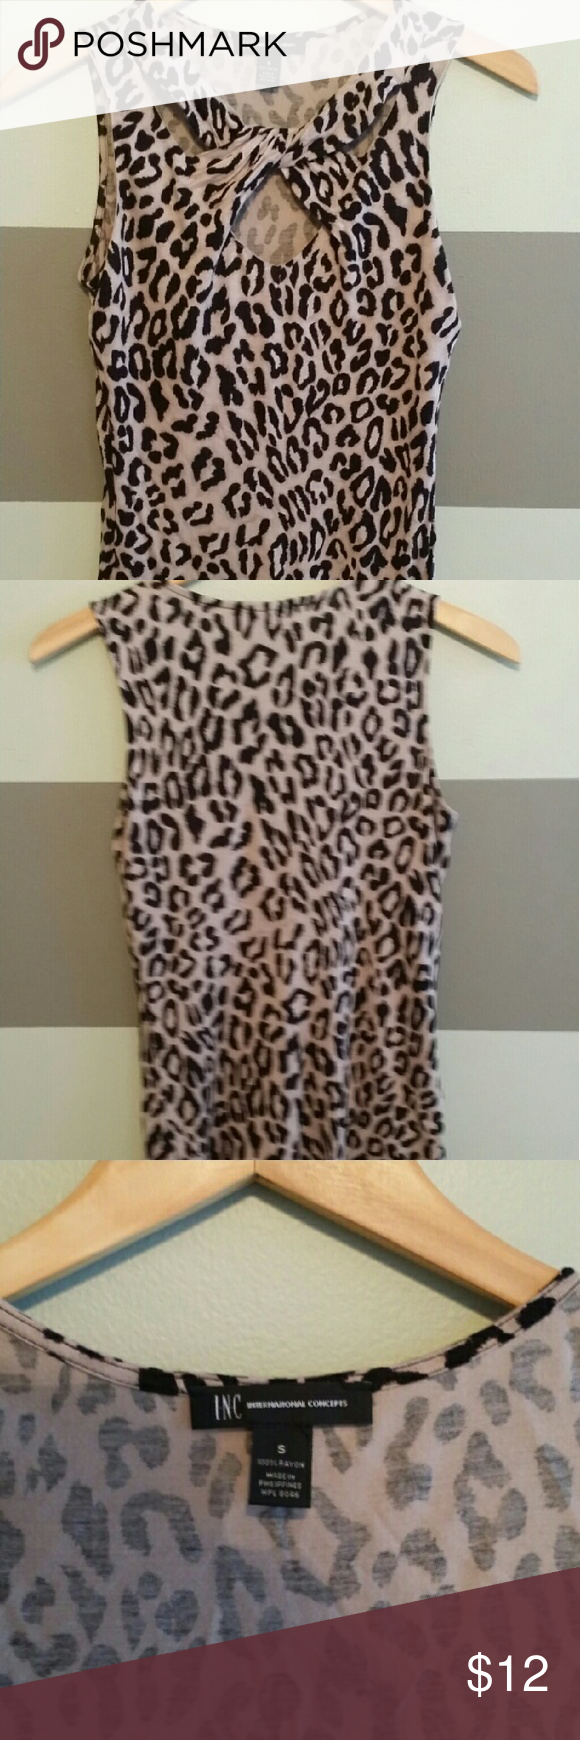 Leopard peint top Smooth soft feel sleeveless top INC International Concepts Tops